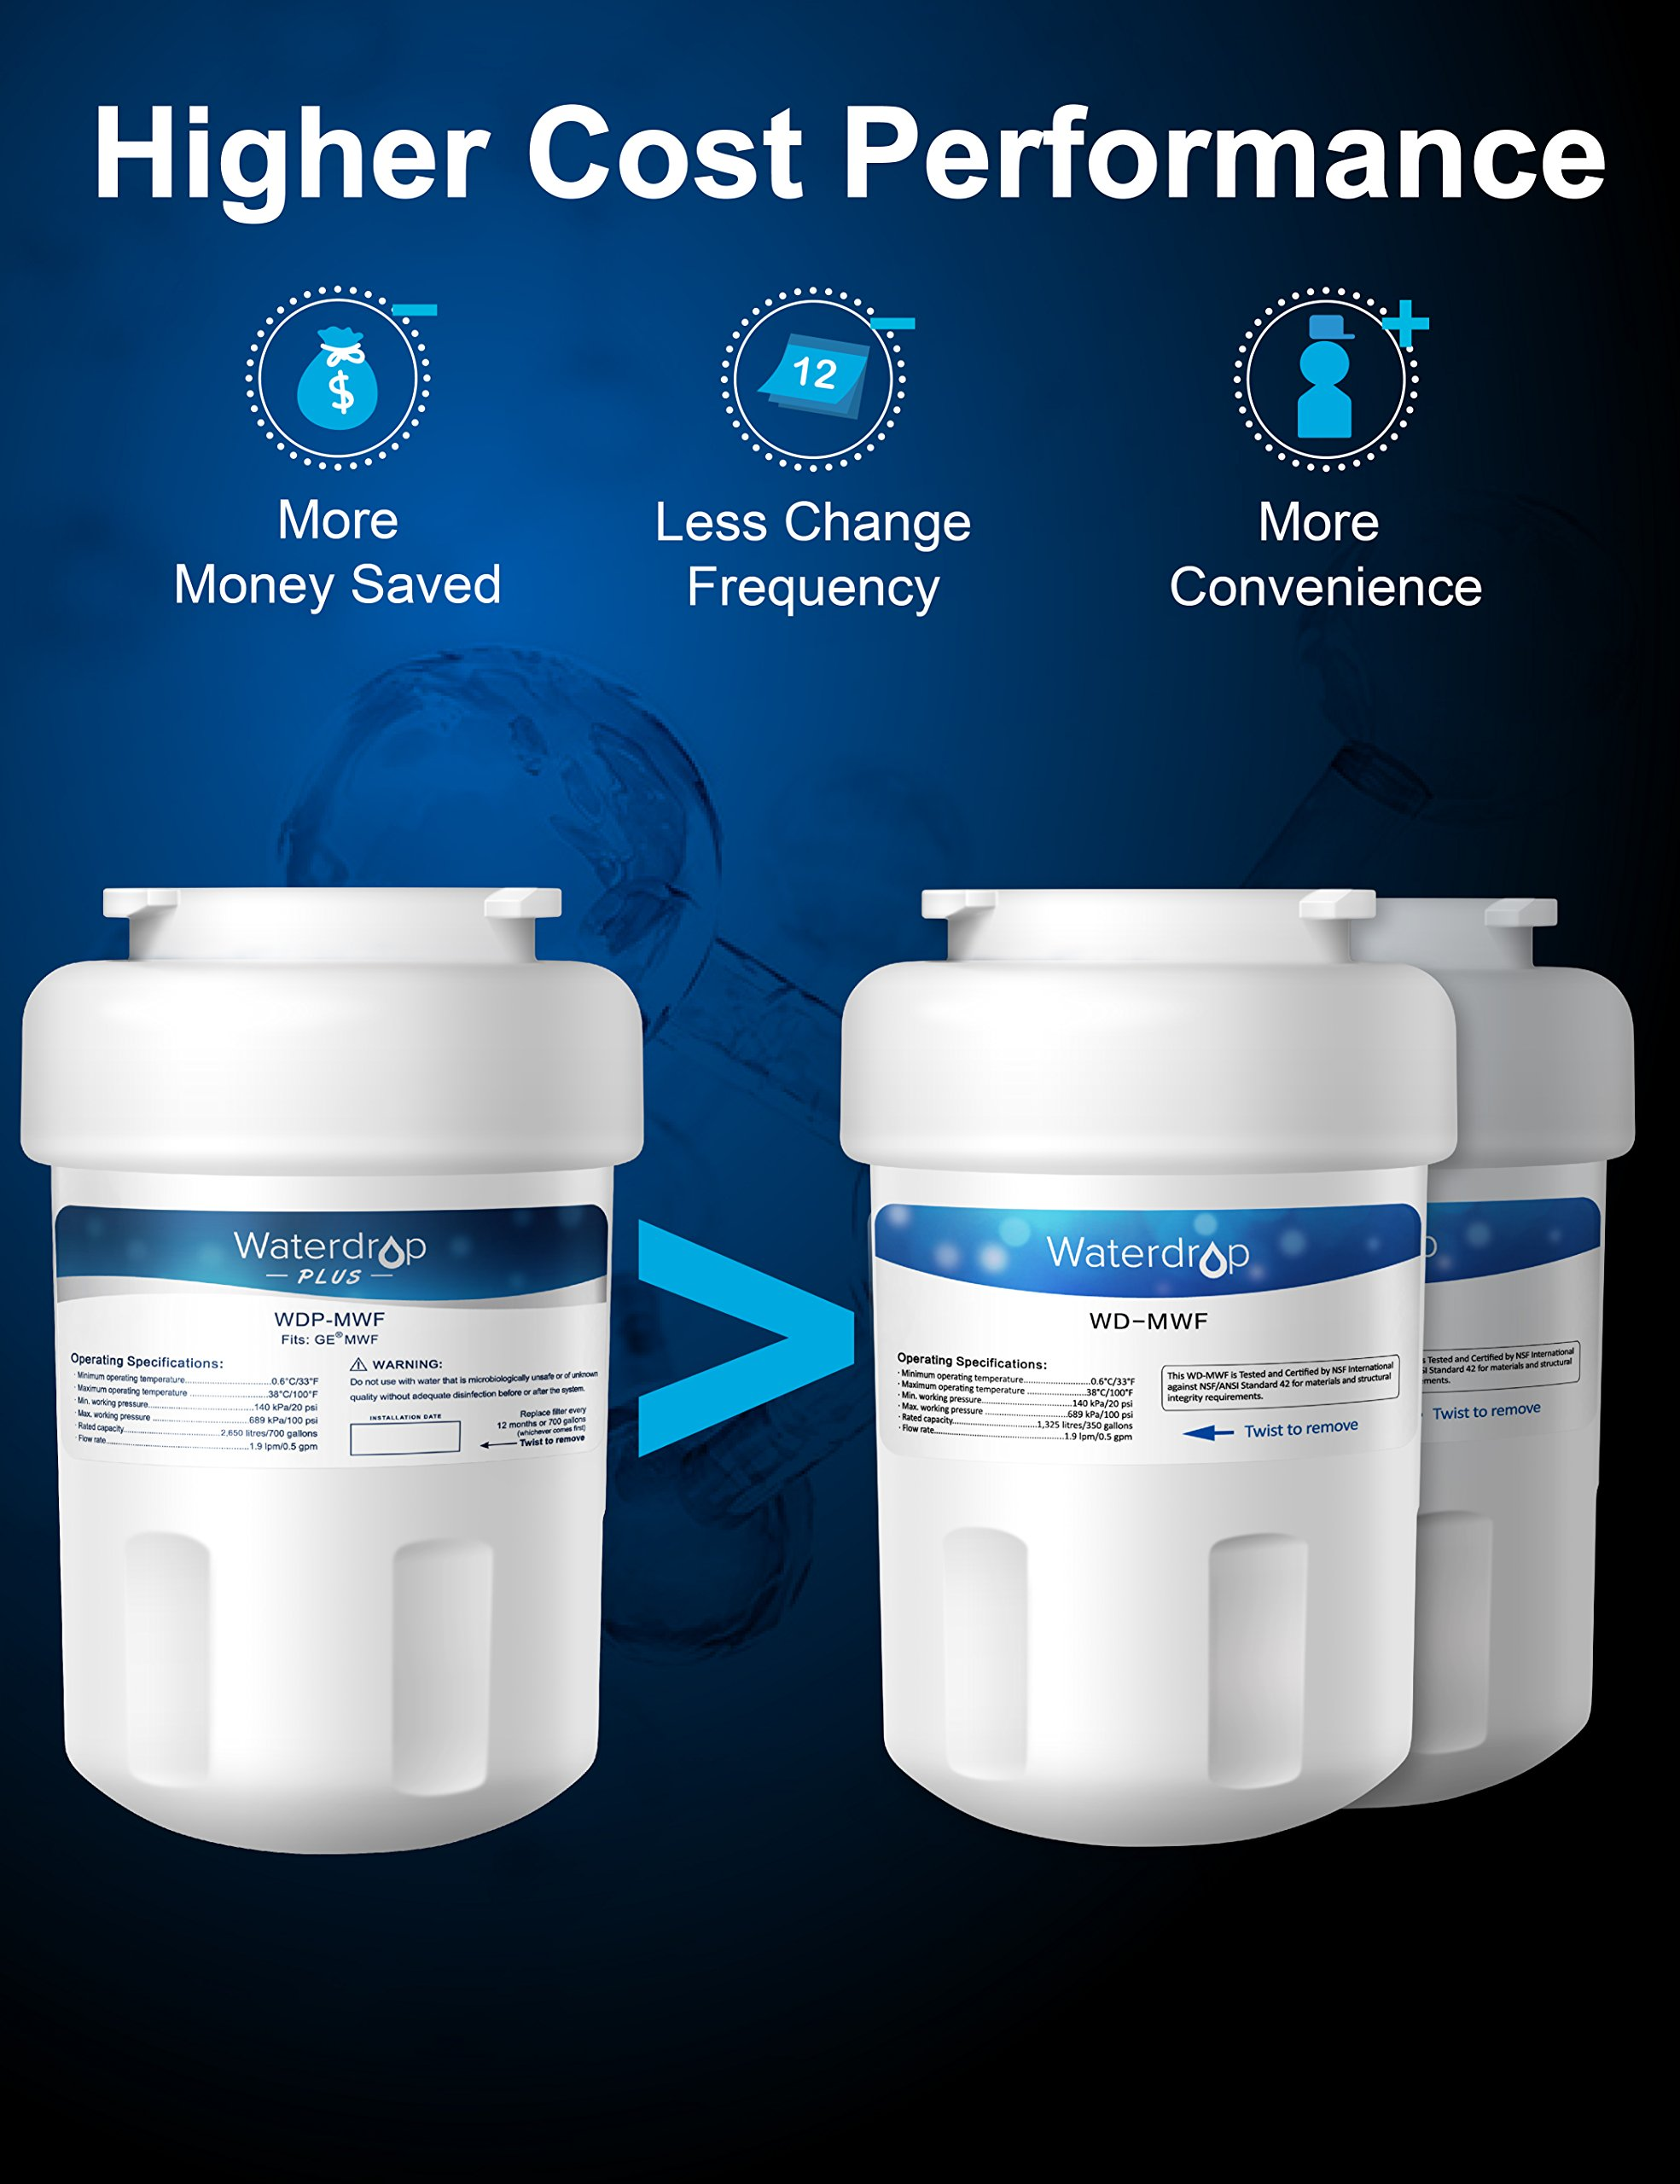 Waterdrop Plus MWF Double Lifetime Replacement Refrigerator Water Filter, Compatible with GE MWF, MWFP, MWFA, GWF, GWFA, SmartWater, Kenmore 9991, 46-9991, 469991 (2 Pack) by Waterdrop (Image #5)